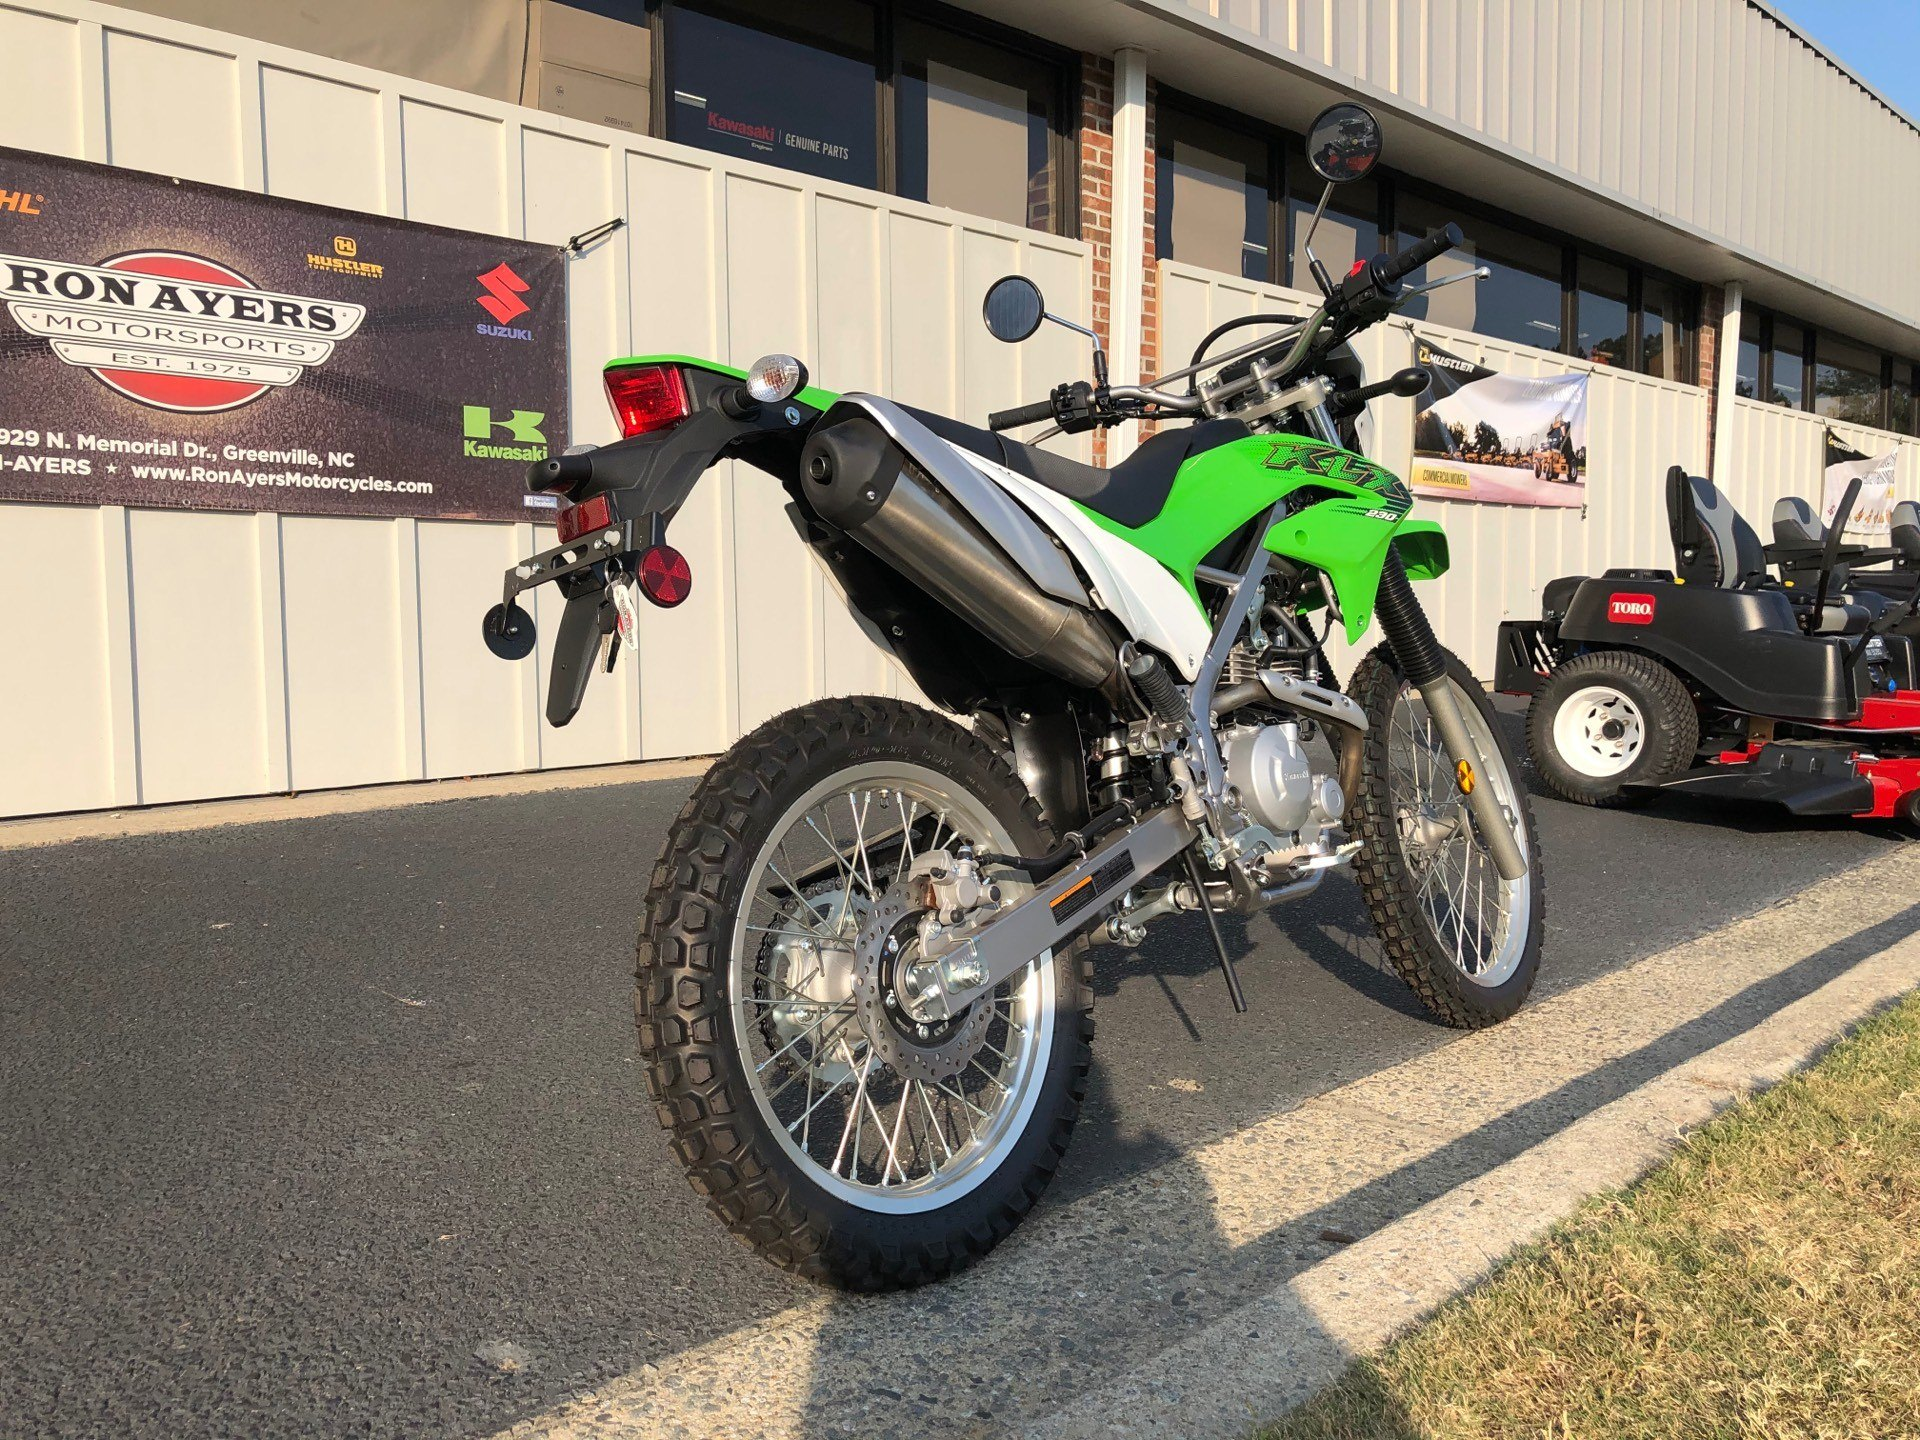 2020 Kawasaki KLX 230 in Greenville, North Carolina - Photo 11